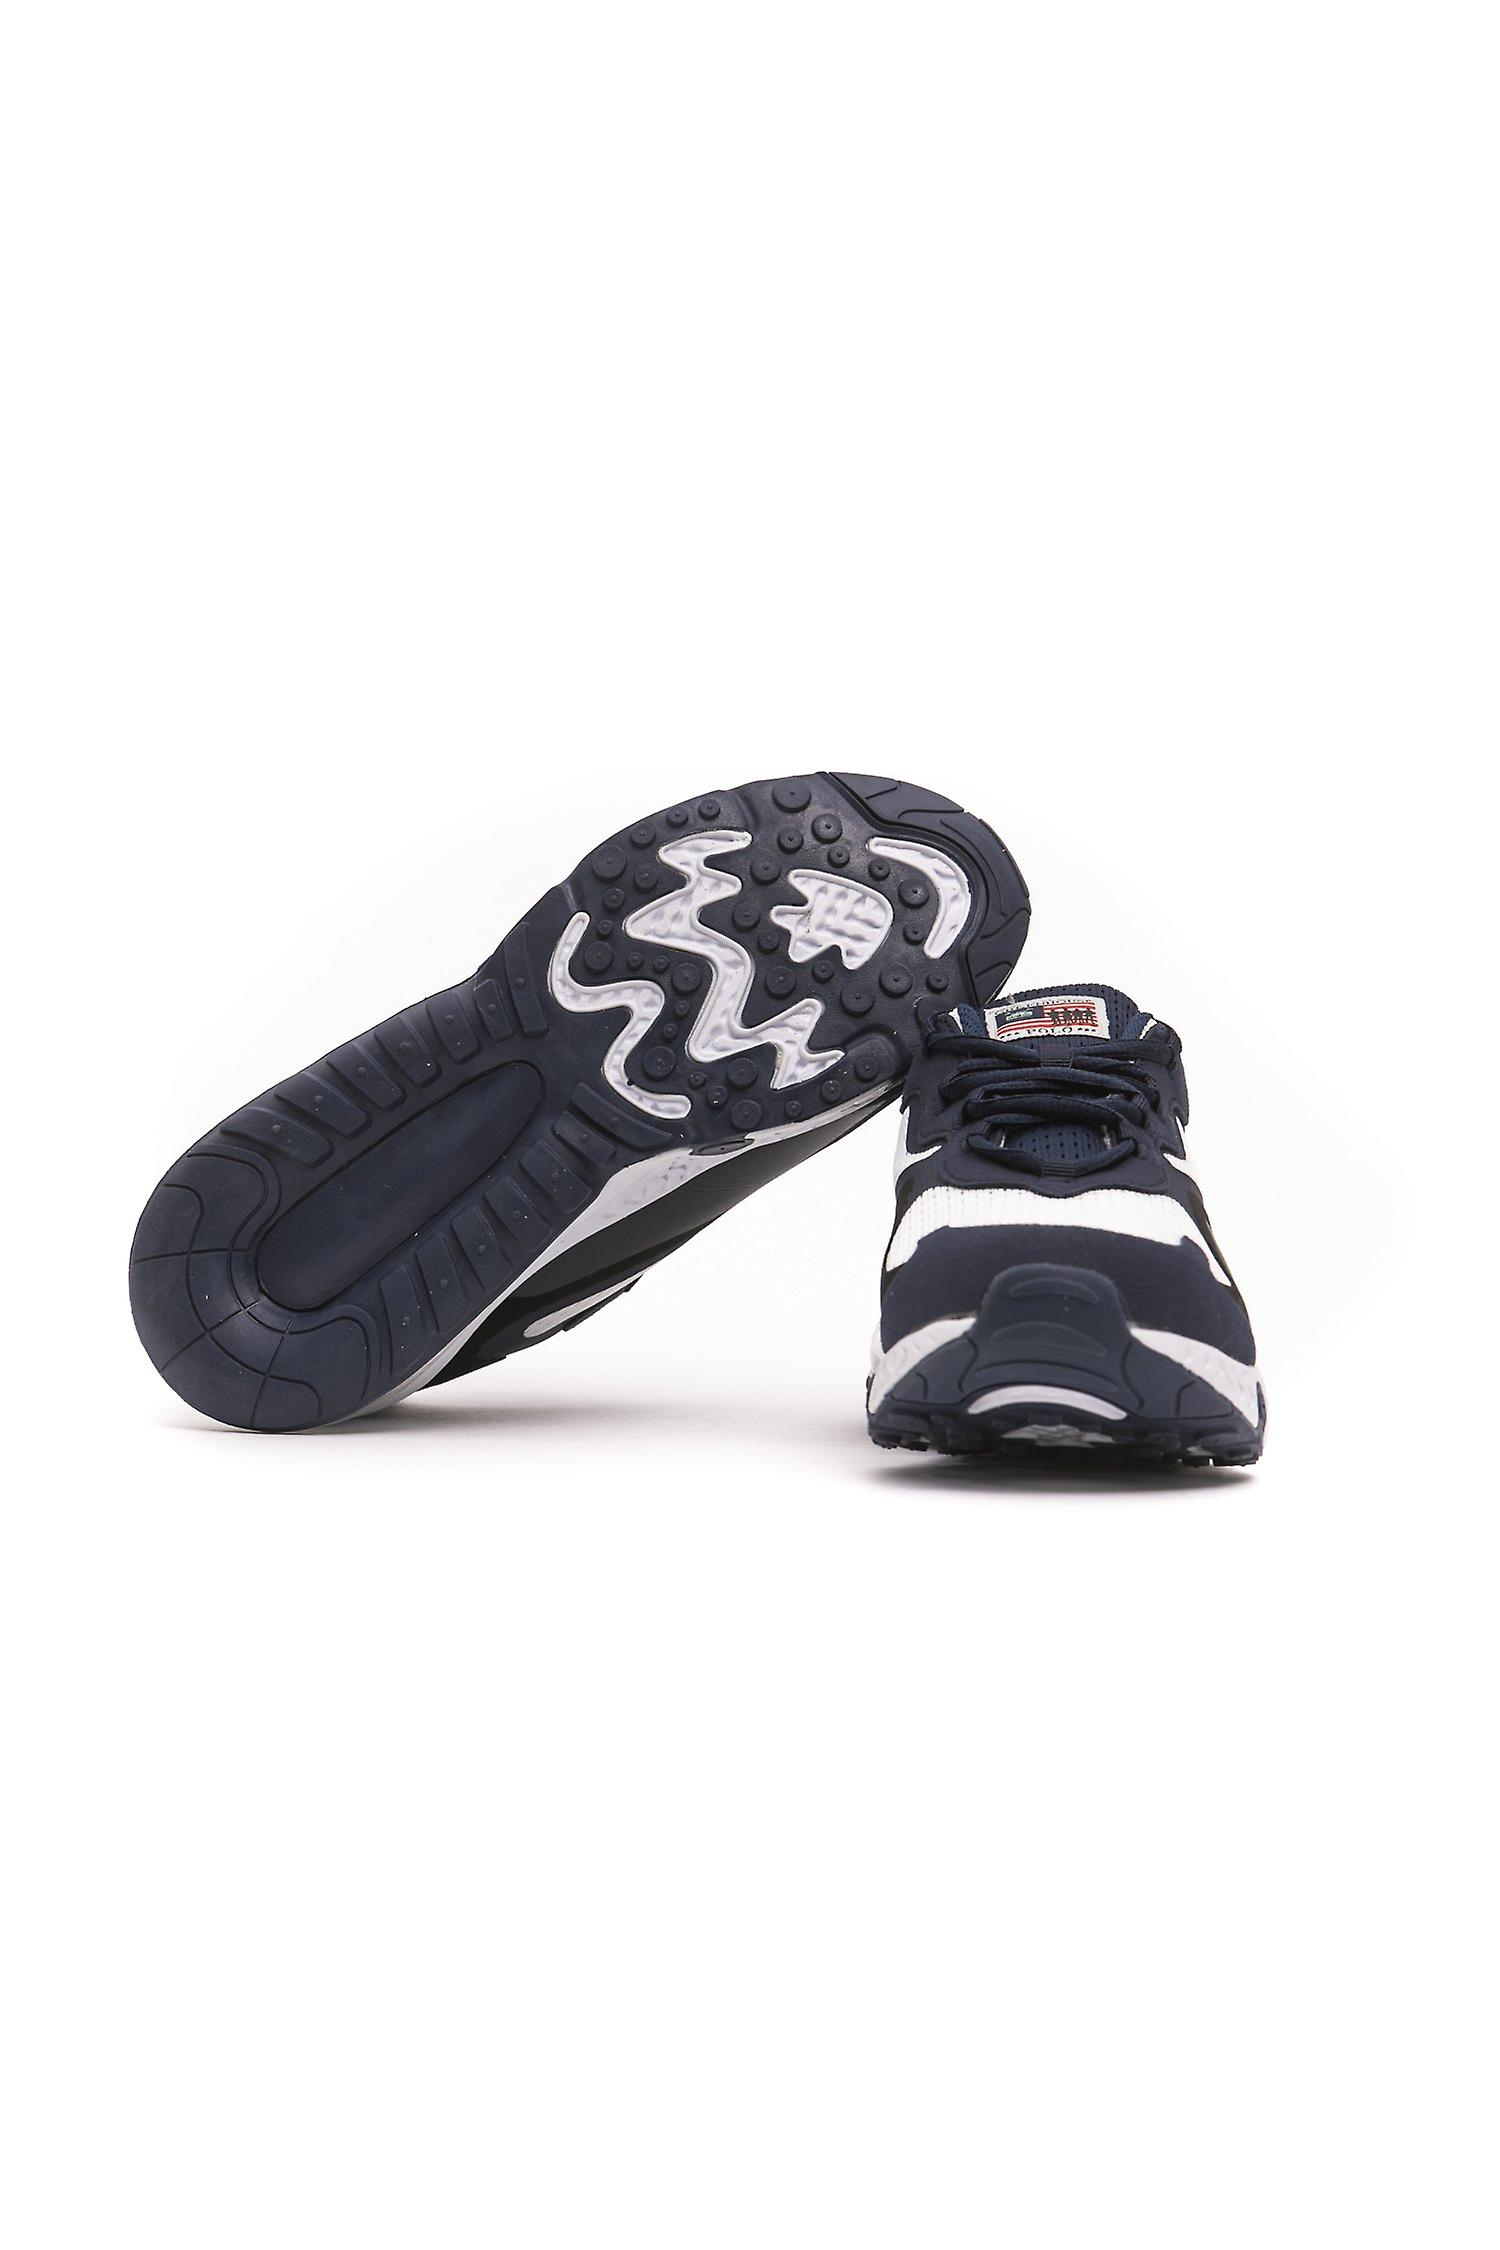 Drivhus Polo Blu Navy Air Sole Laced Joggesko